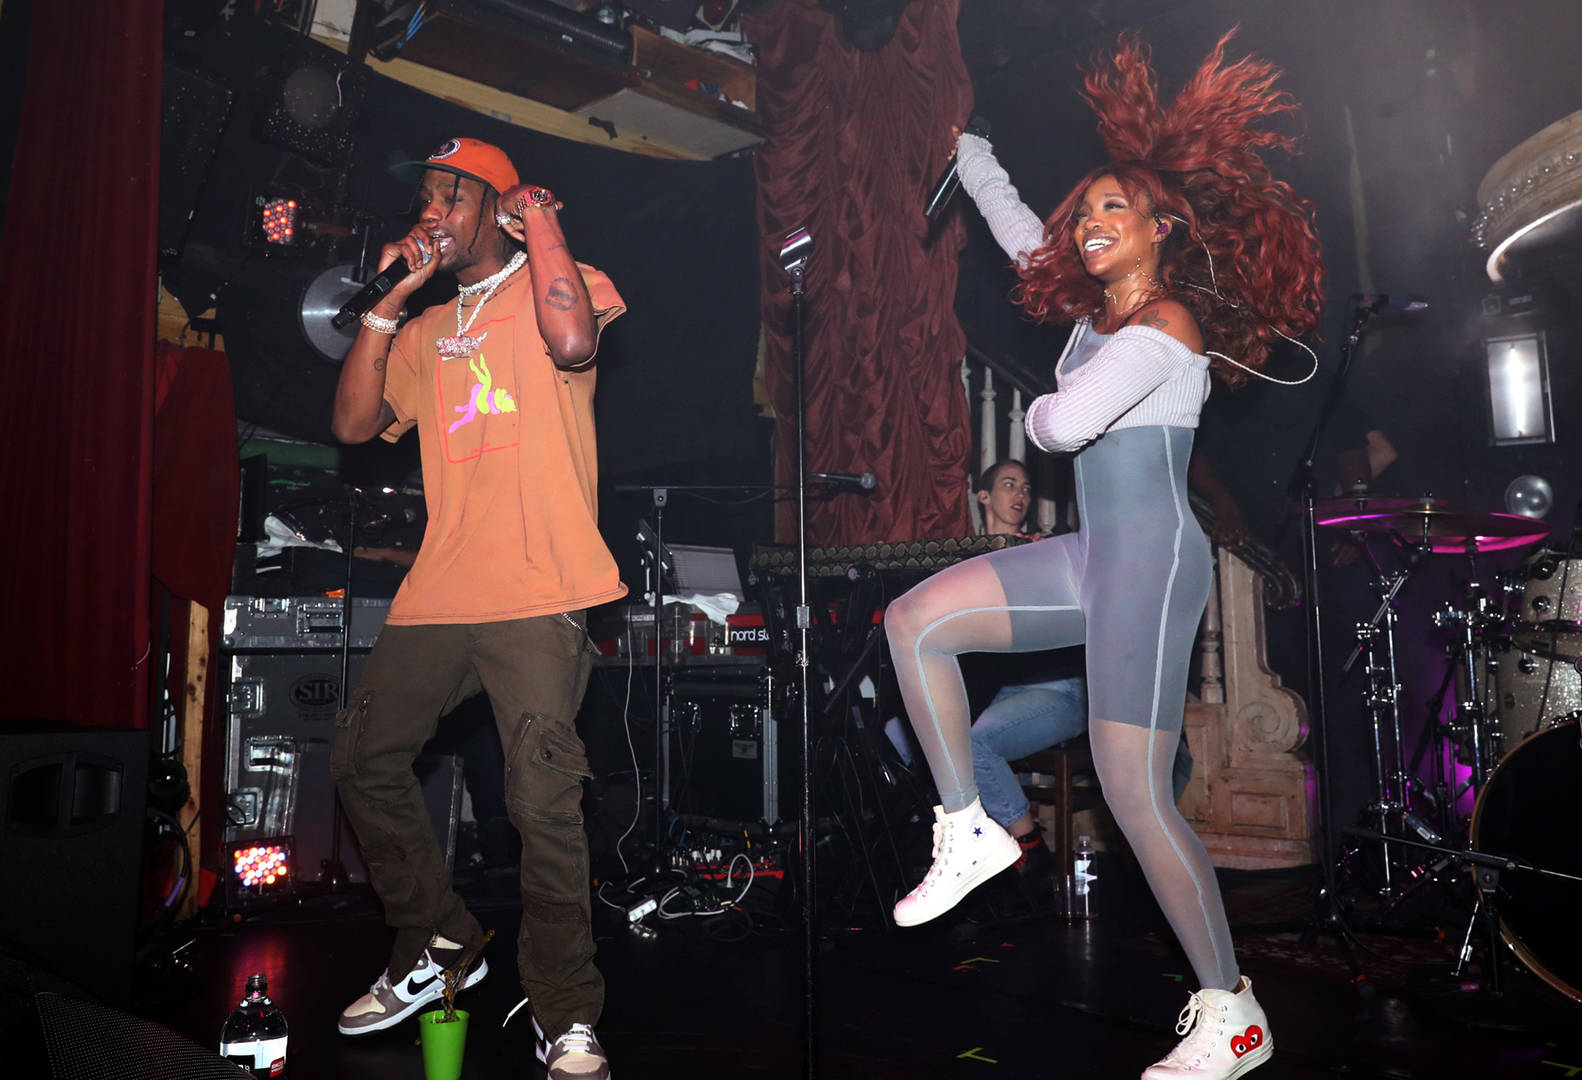 Travis Scott (L) and SZA perform at The Box on October 10, 2017 in New York City